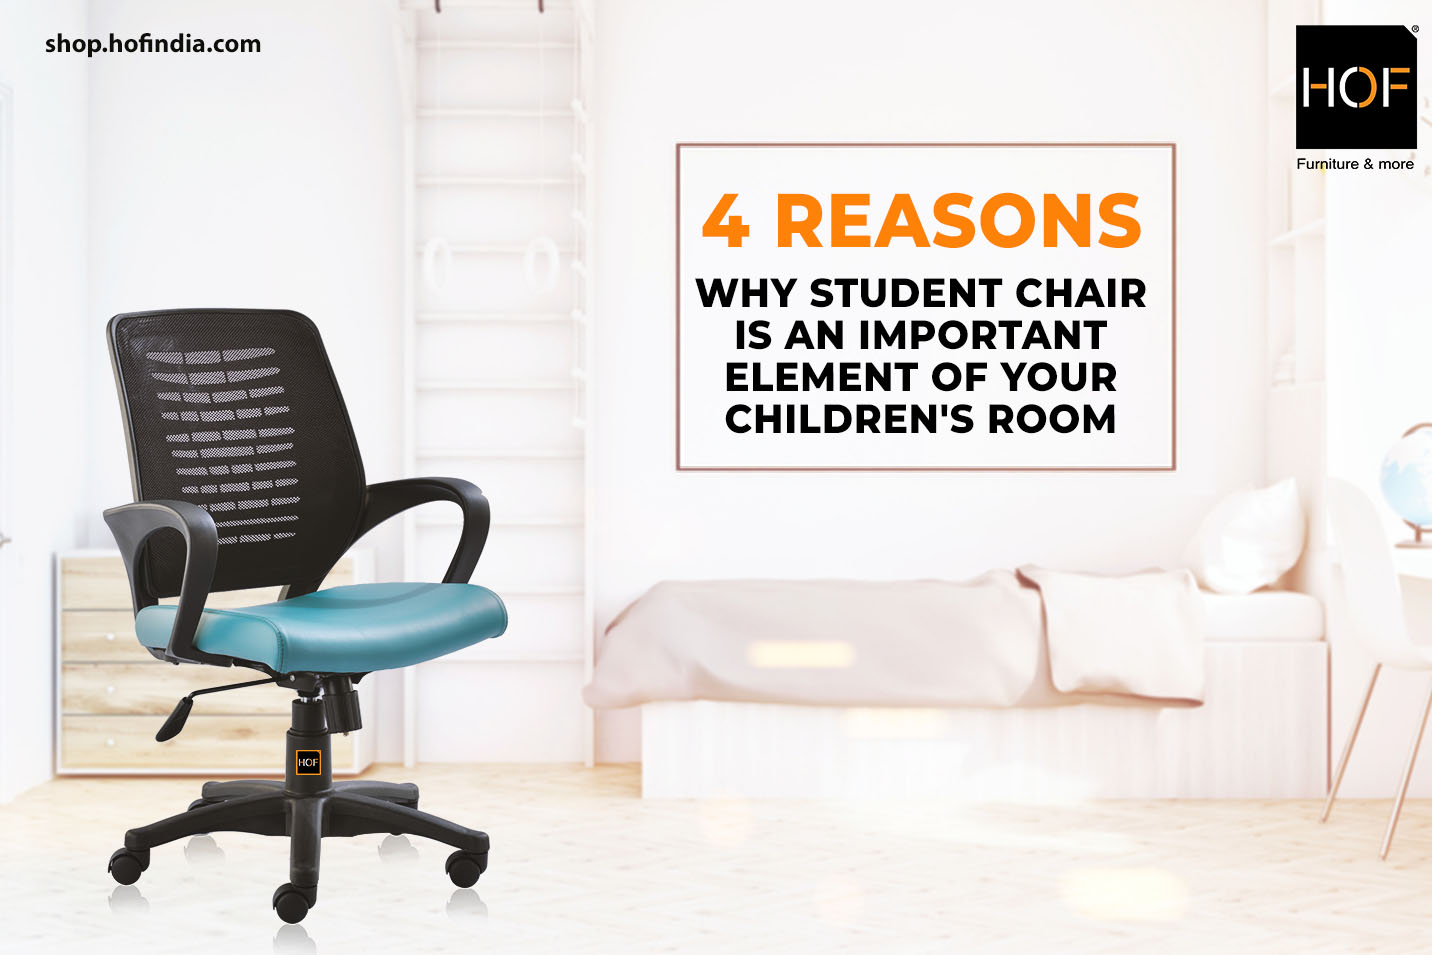 4 reasons why student chair is an important element of your children's room